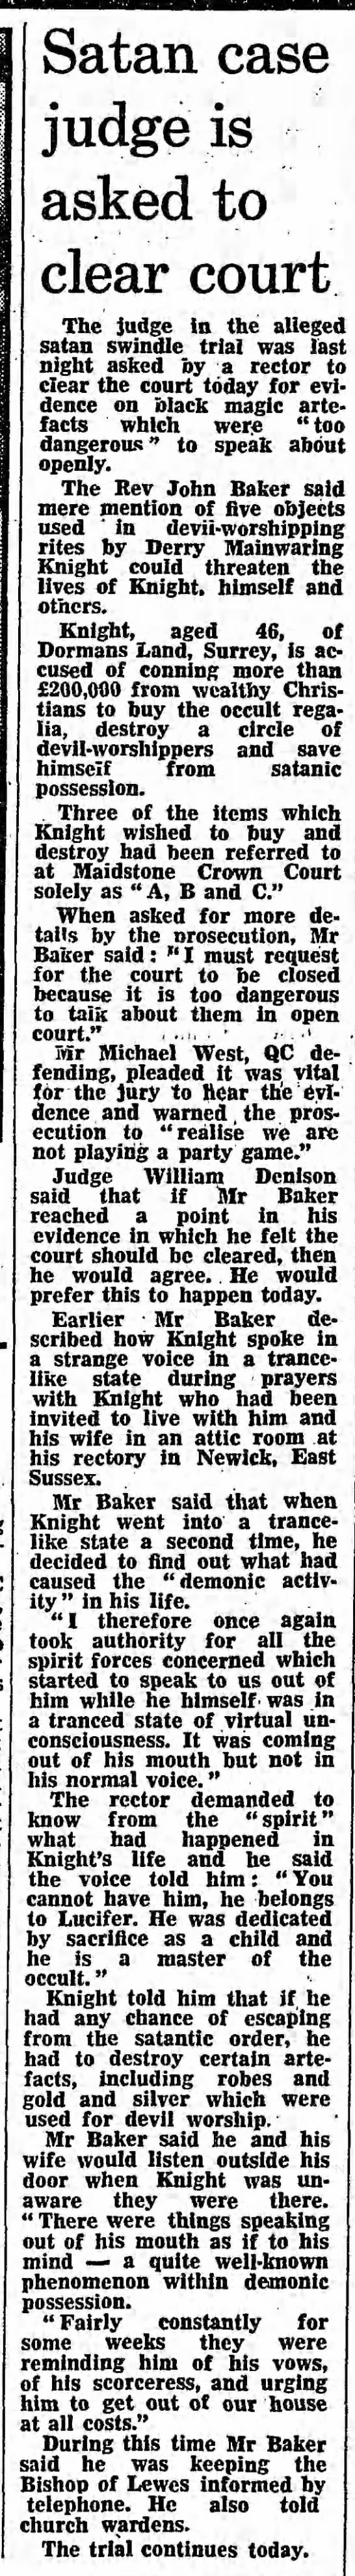 Peter Ball satanic artefacts Derry Mainwaring Knight trial - Eng- Satan case judge is asked to clear court...